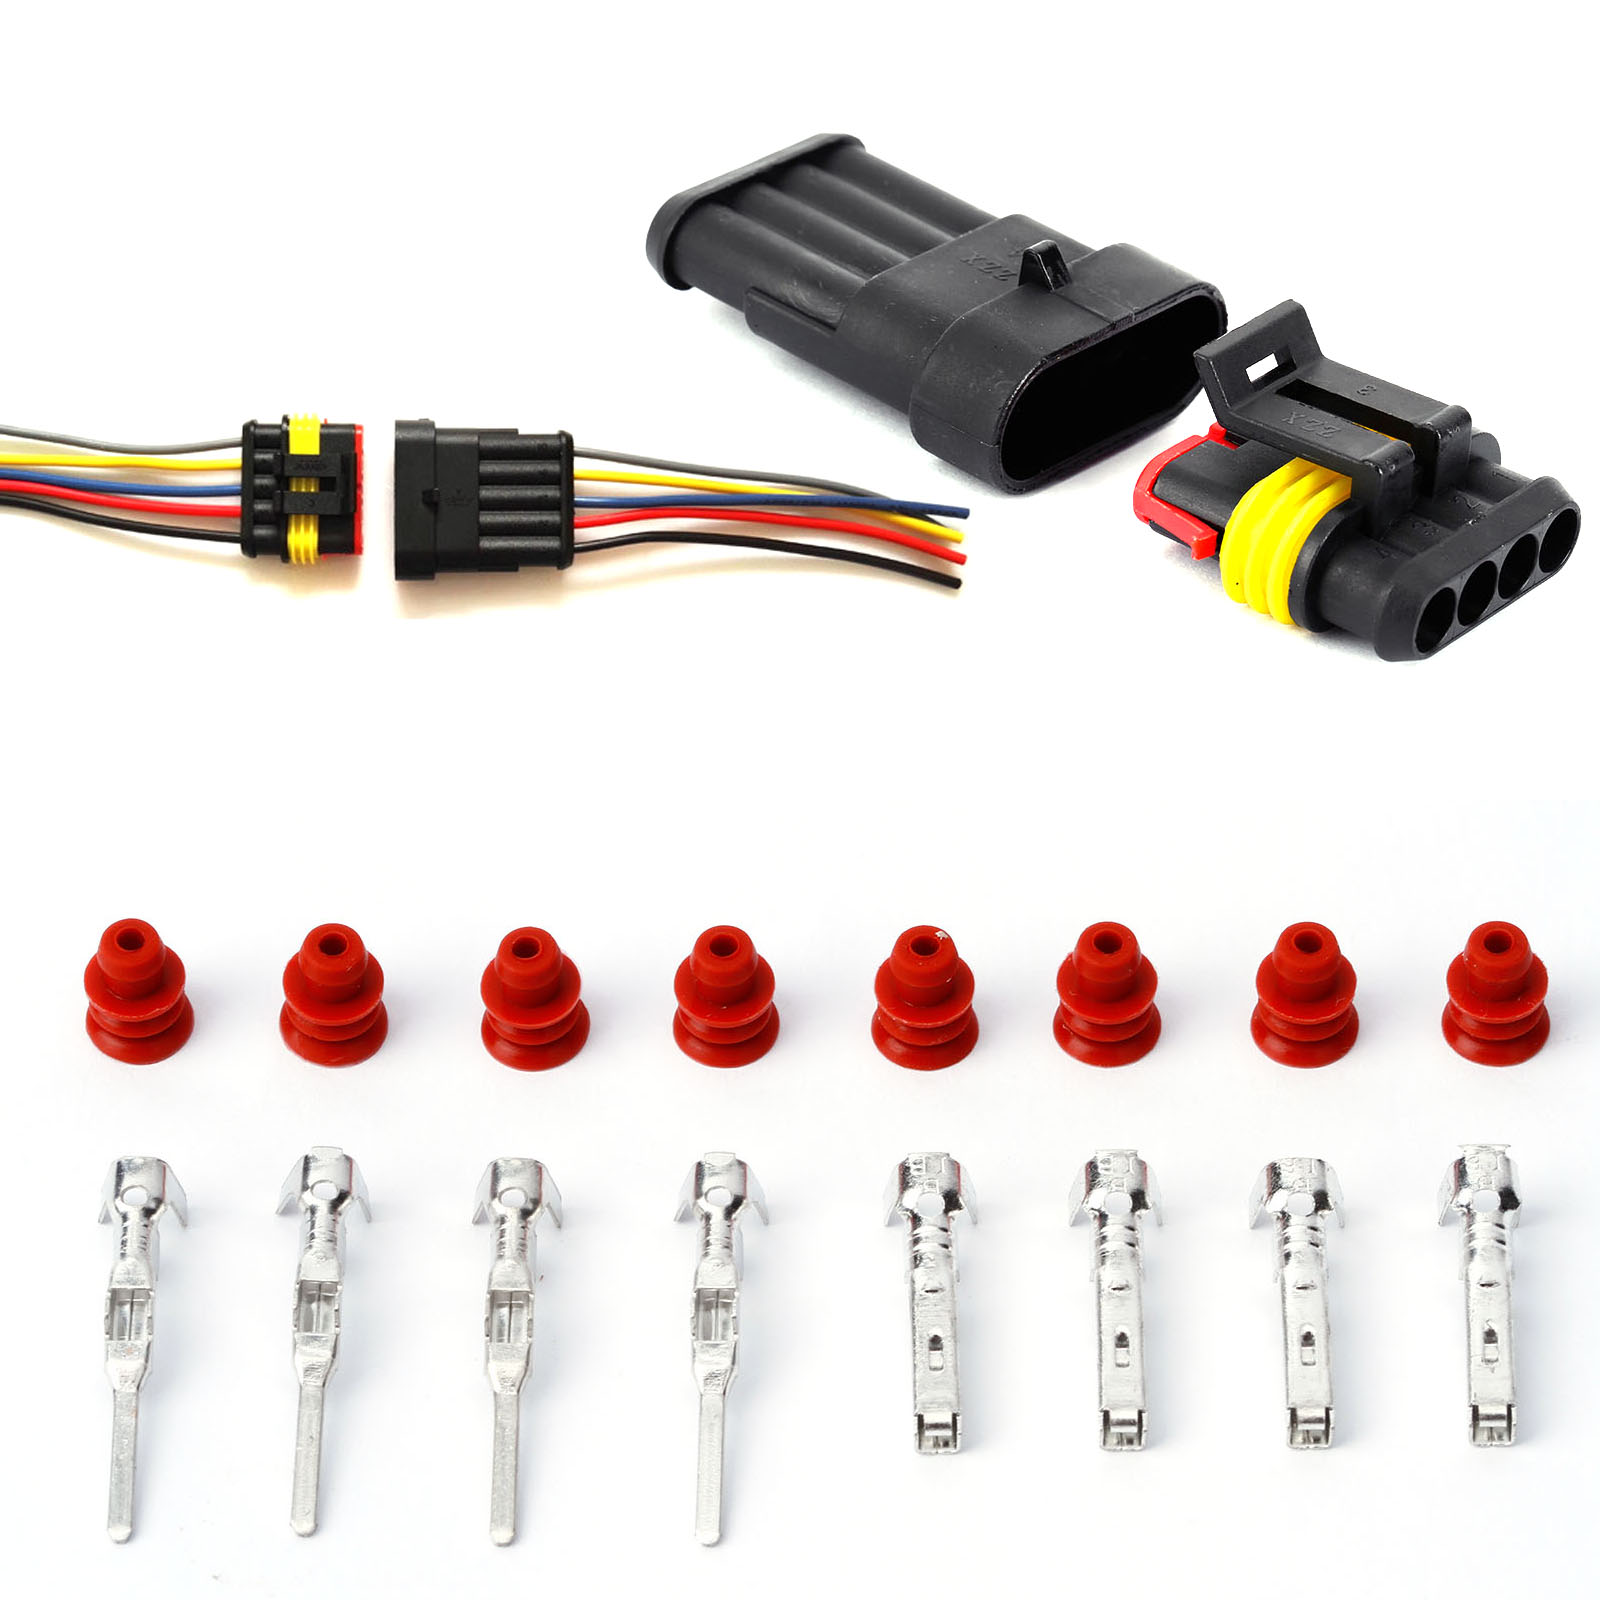 10 Set of 2 Pin Plastic Car Waterproof Electrical Wire Plug Connector 1.5-2.5mm²